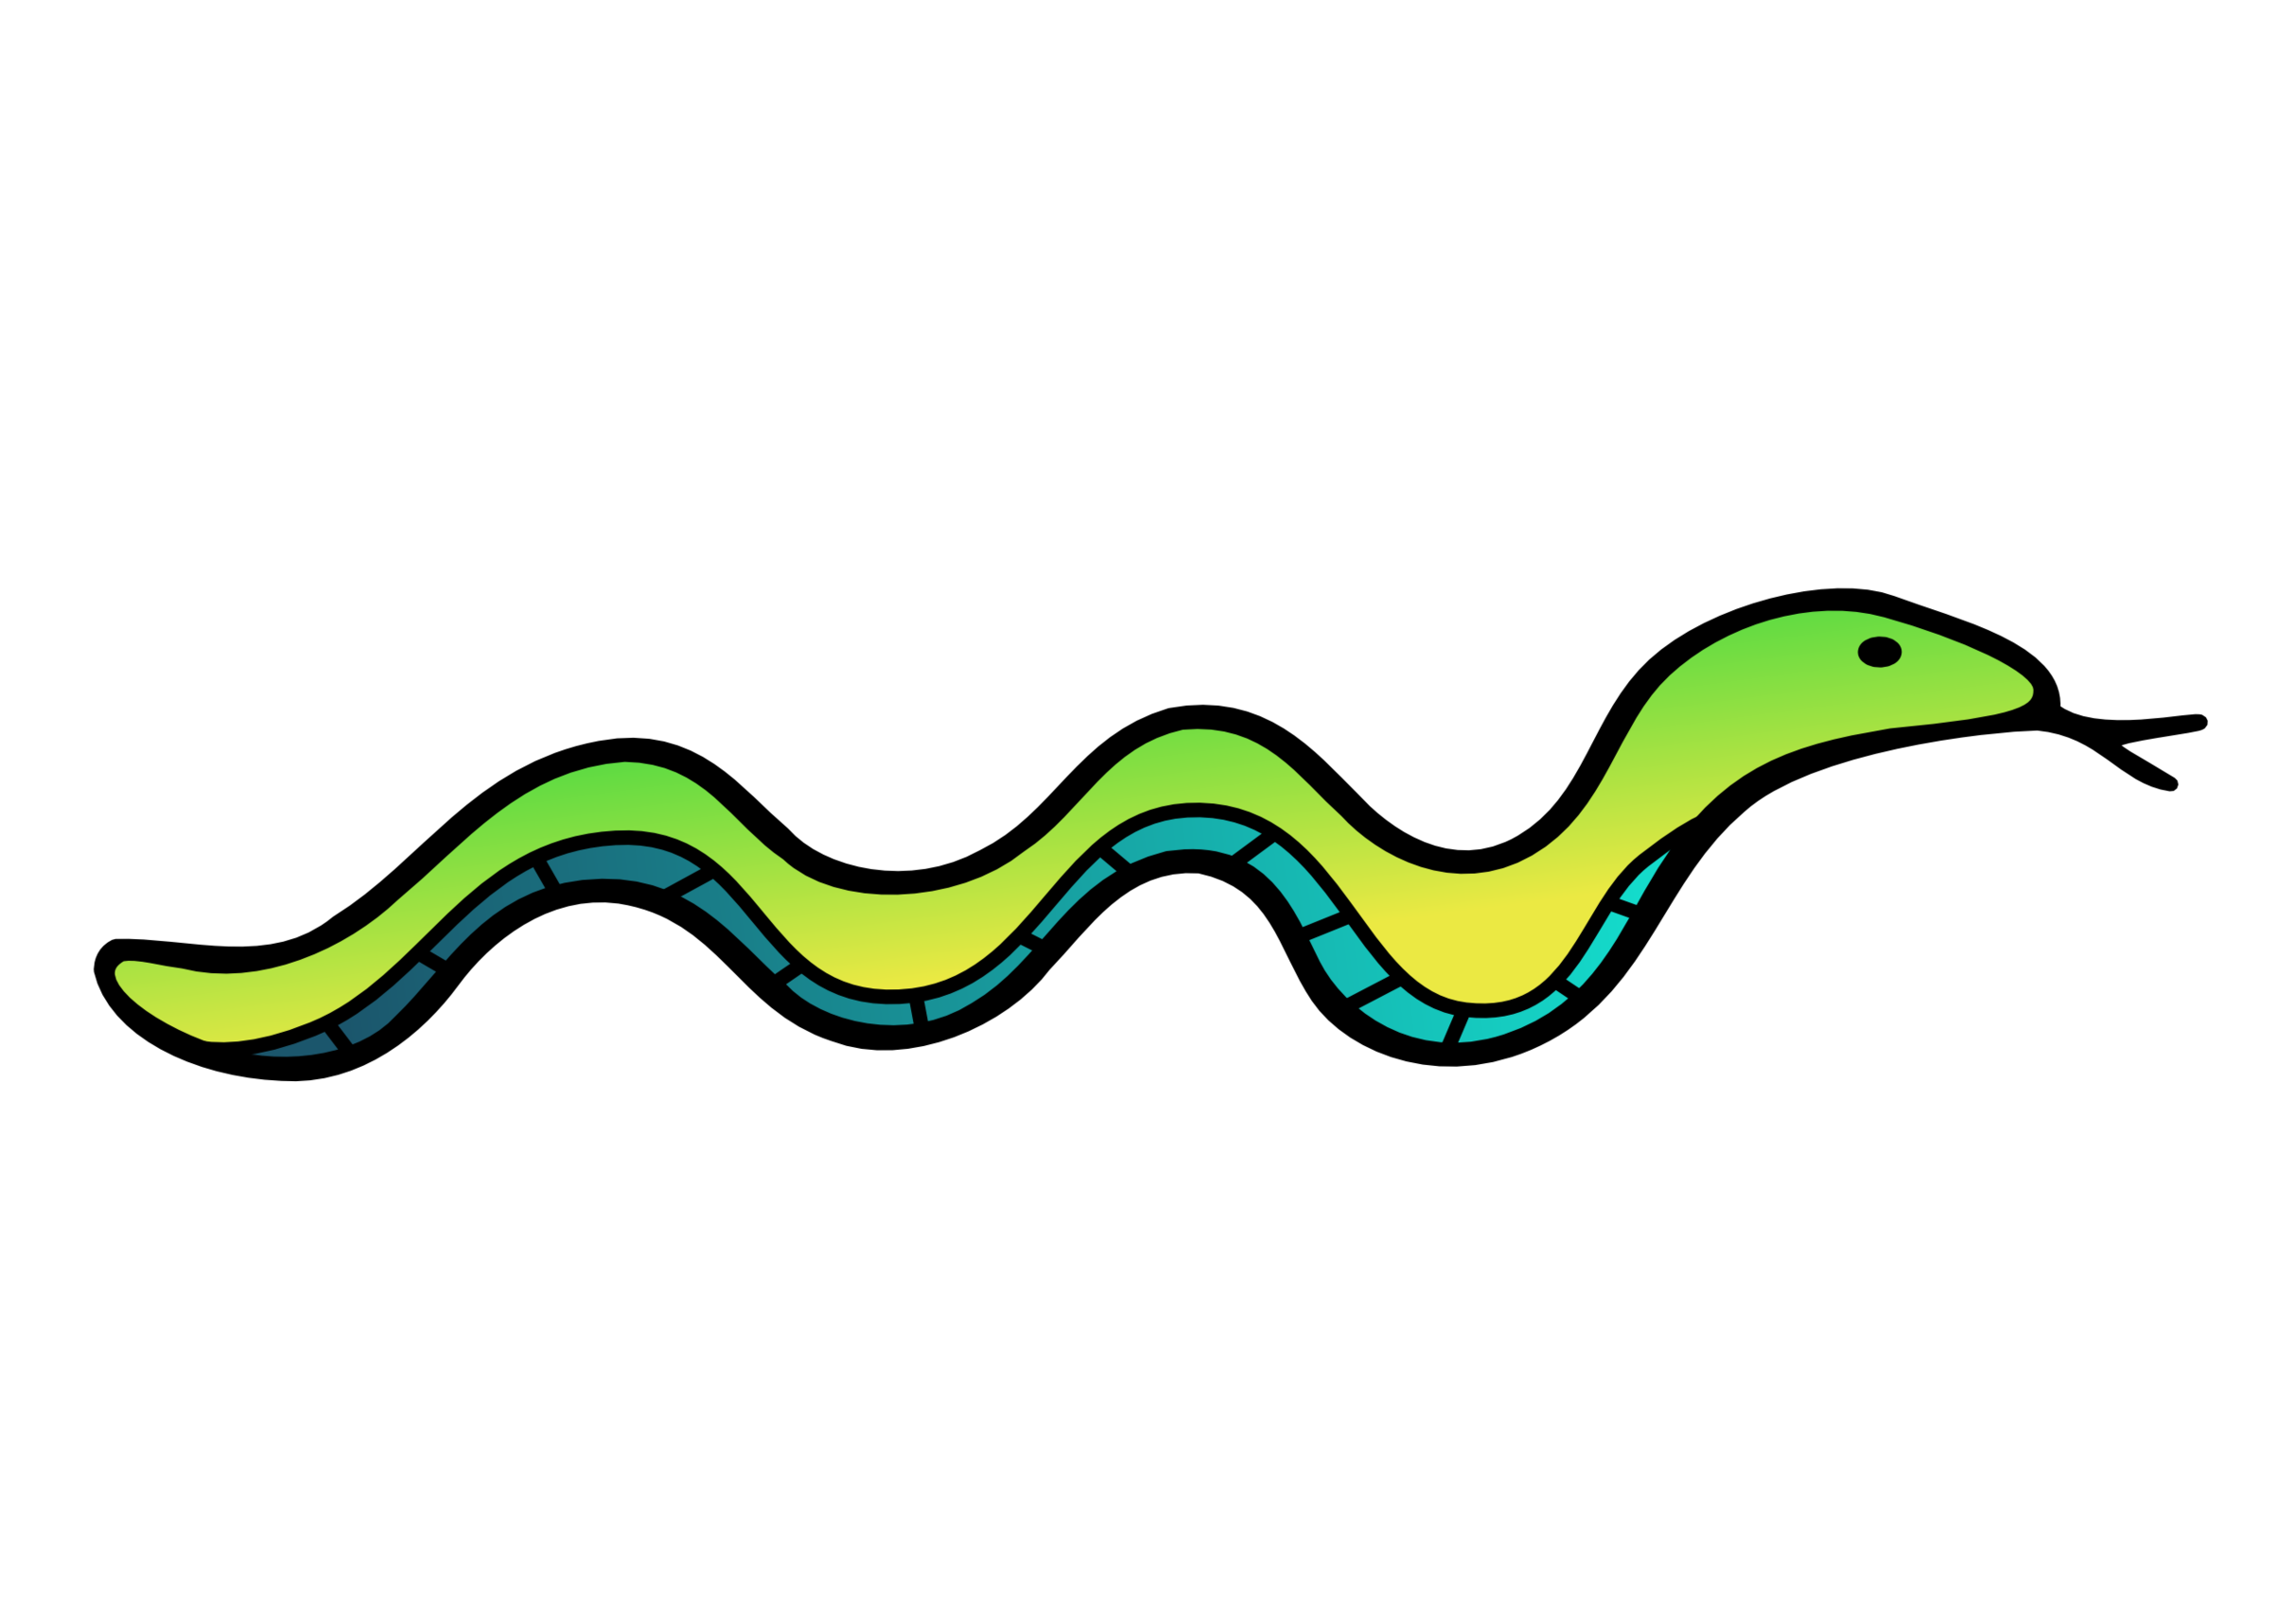 Snake clipart bmp.  collection of transparent